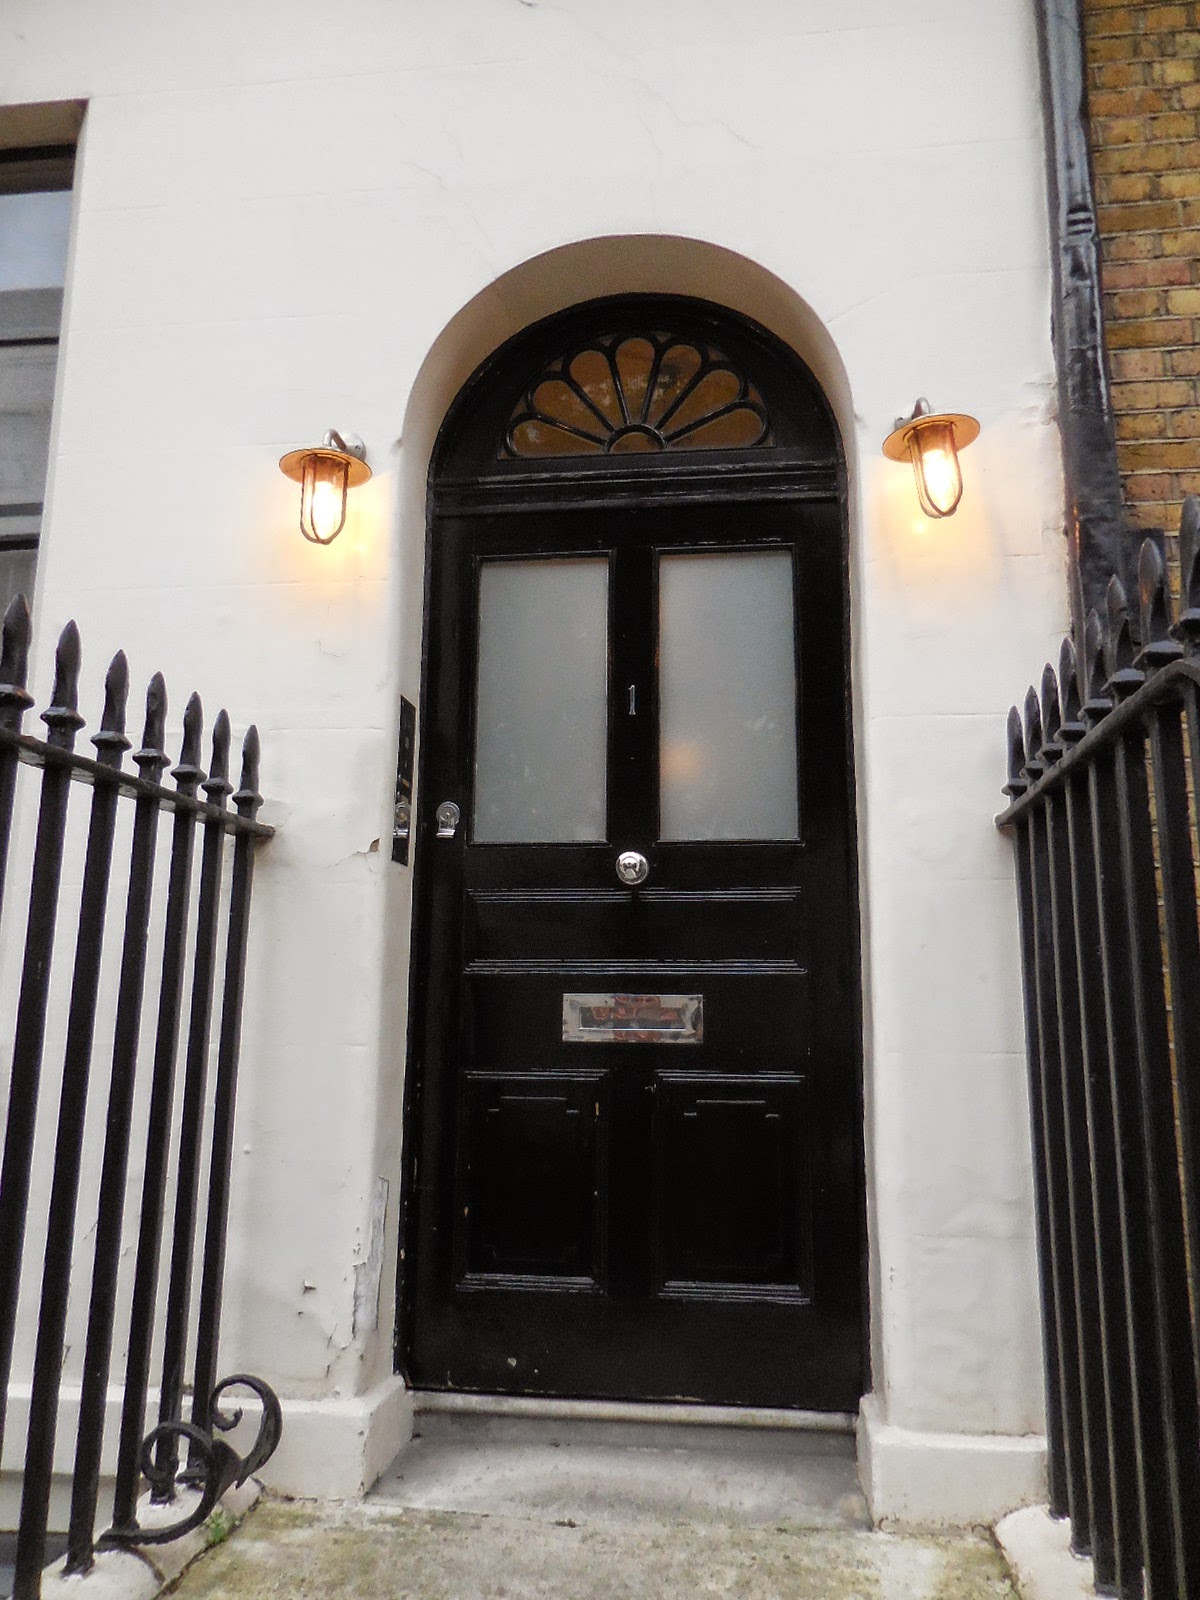 Scotland Office (Dover House) Whitehall & INTERESTING DOORS WE SAW AROUND LONDON \u2013 Number One London